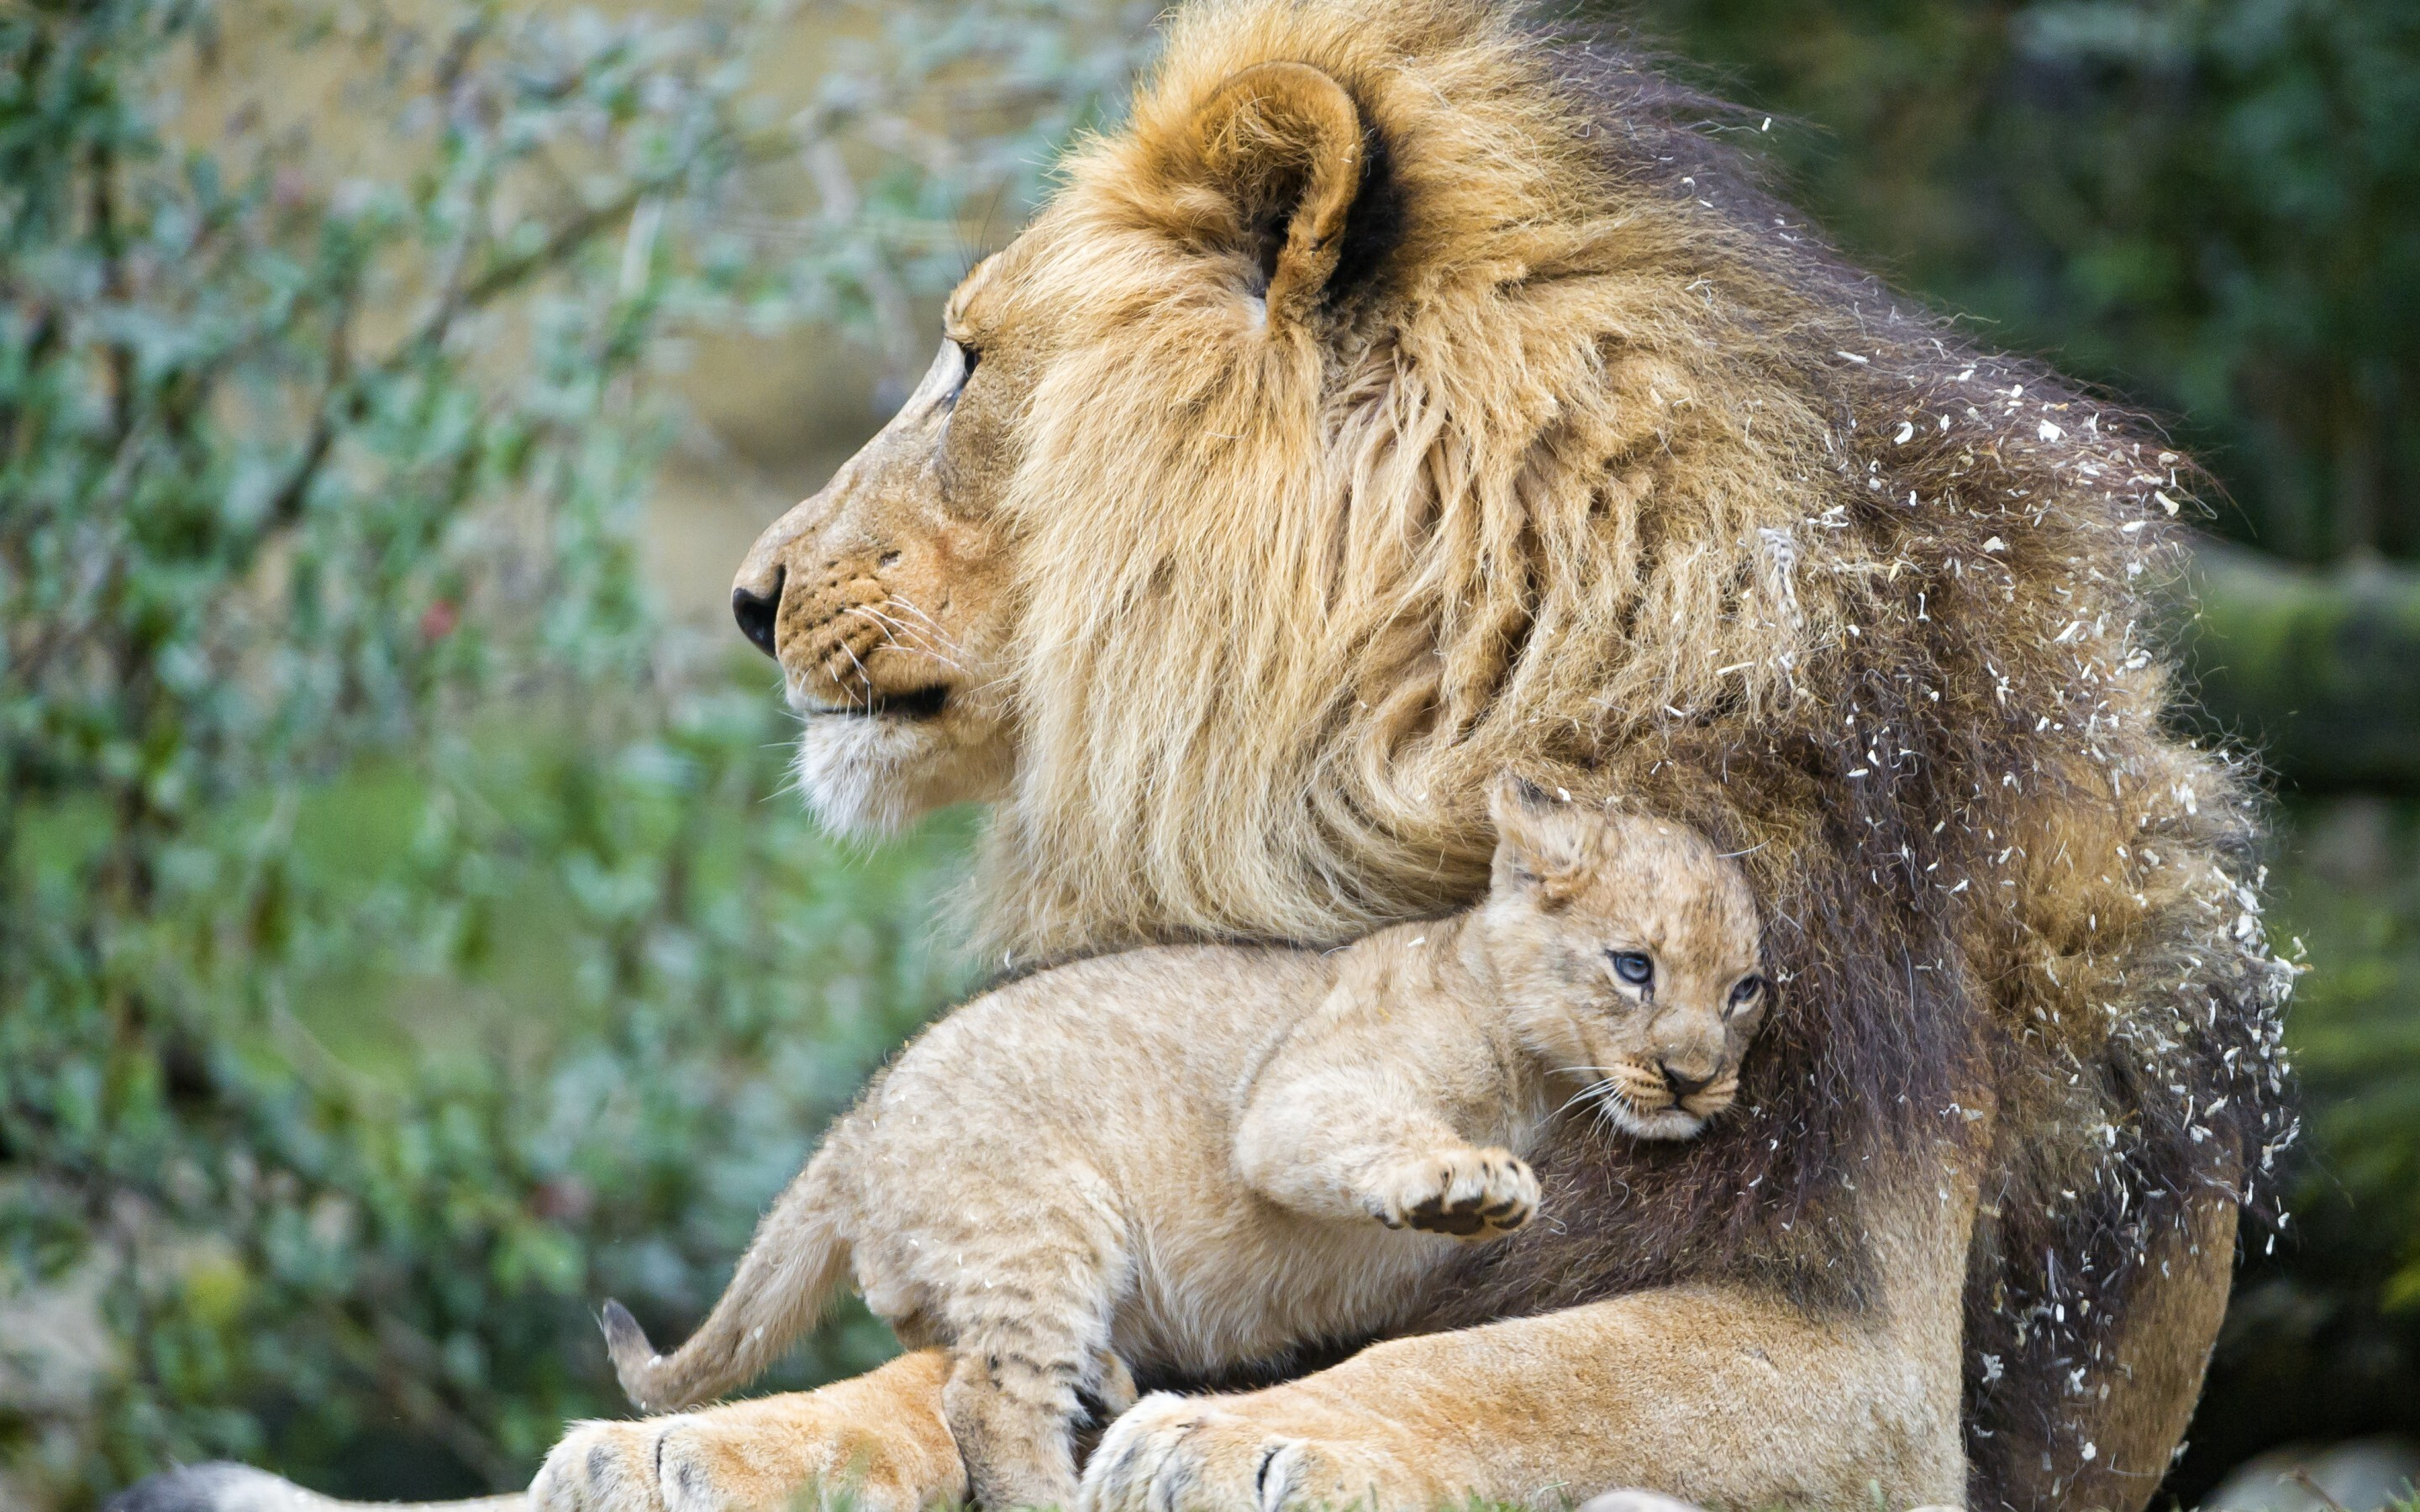 Animals Happy Lion Wallpapers Hd Desktop And Mobile: Superb Wallpaper Of Animal Lion With Baby Cub